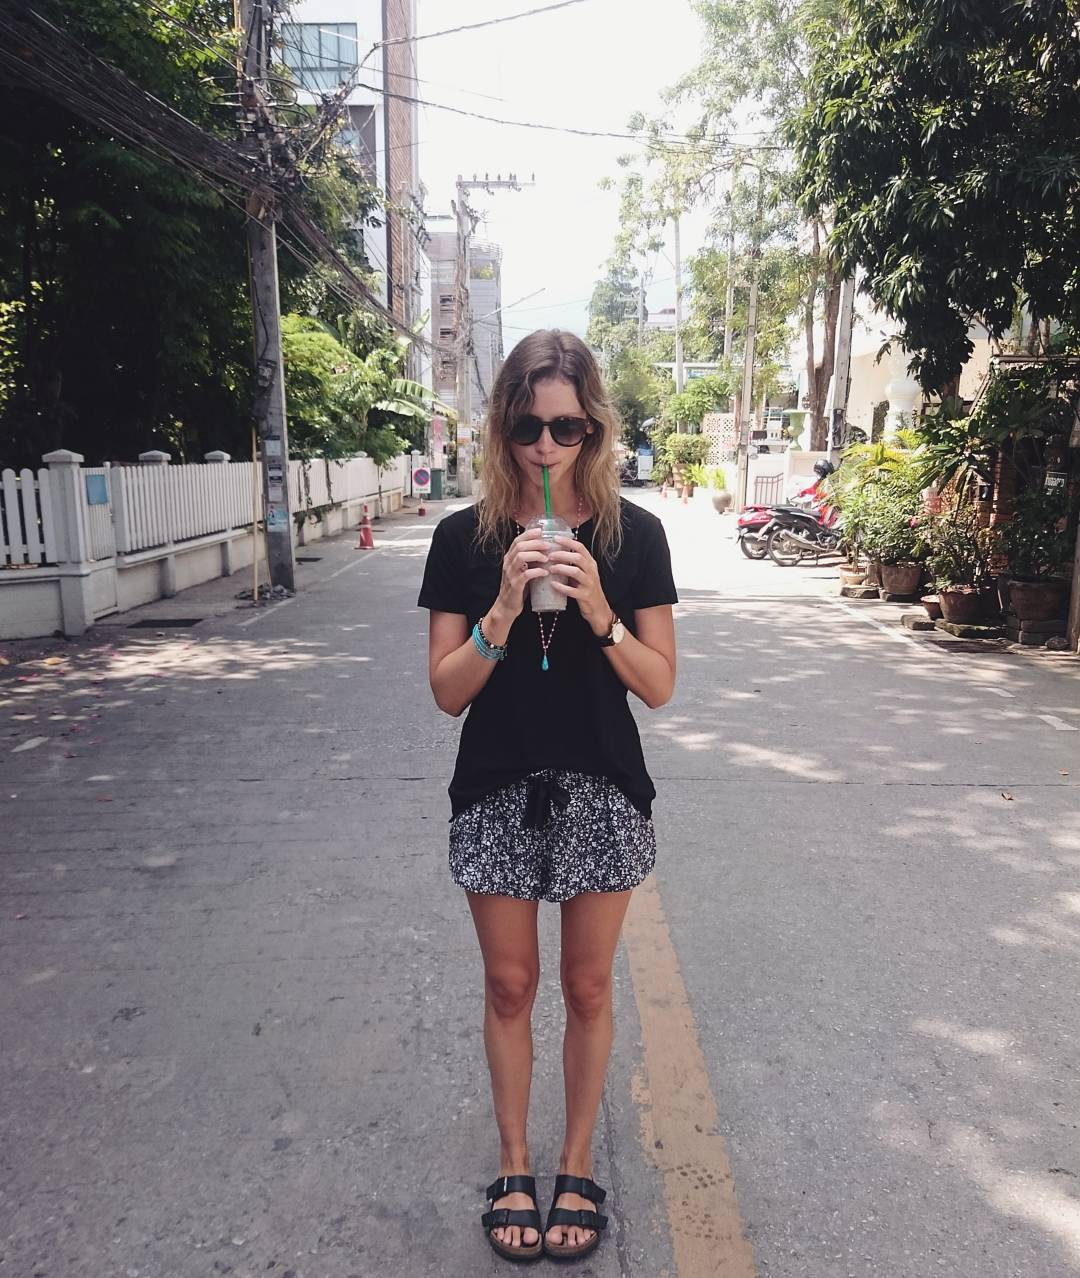 Travel blogger and digital nomad, Alison Hutchinson, is enjoying a smoothie on a hot day in the Nimman are of Chiang Mai, Thailand